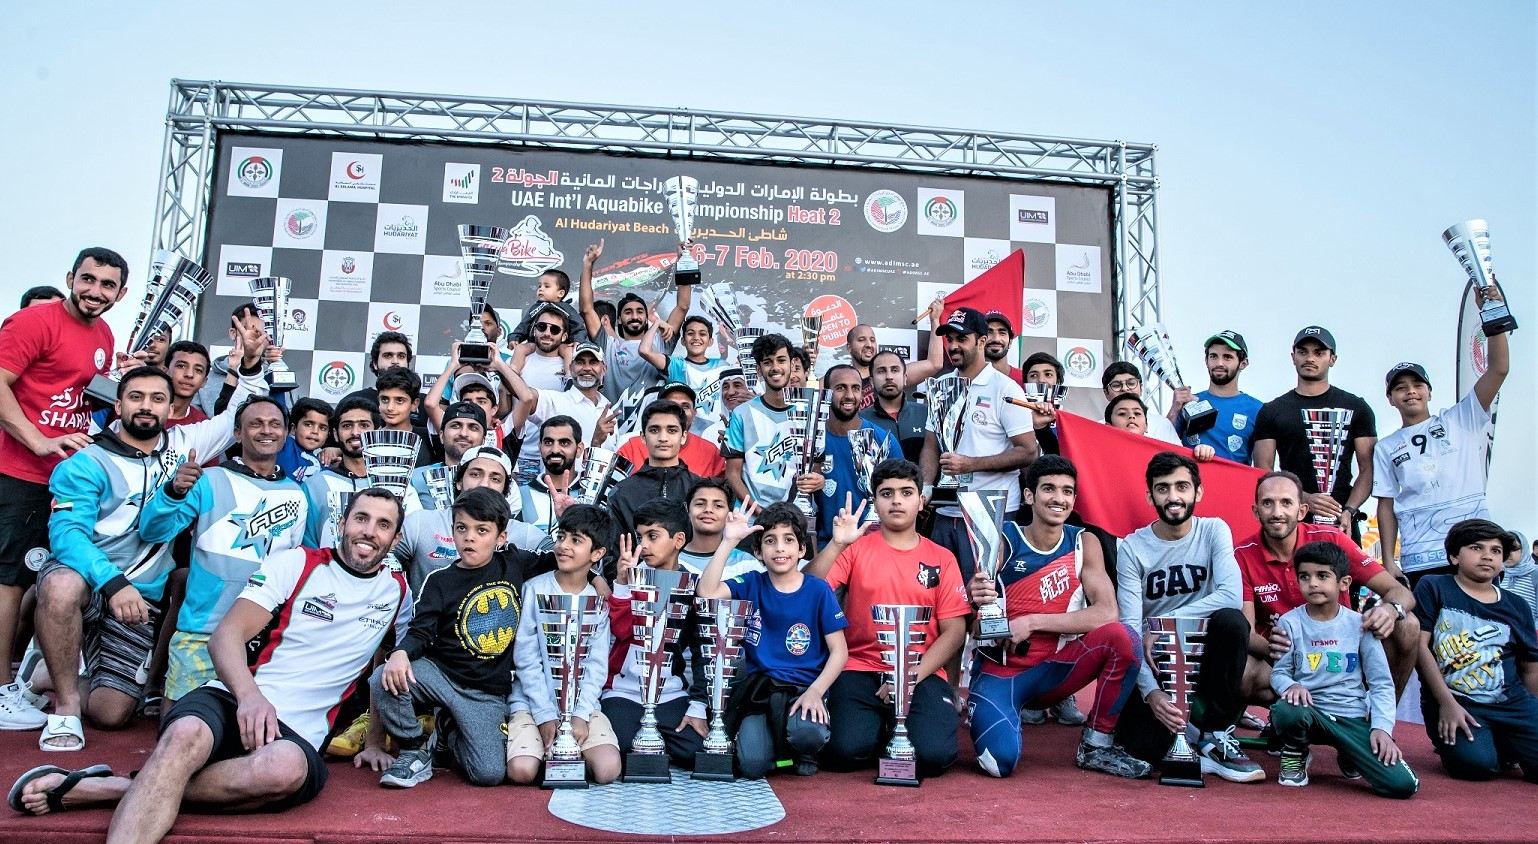 Caption:	The prize winners received their trophies from Salem Al Rumeithi, General Manager of Abu Dhabi International Marine Sports Club.